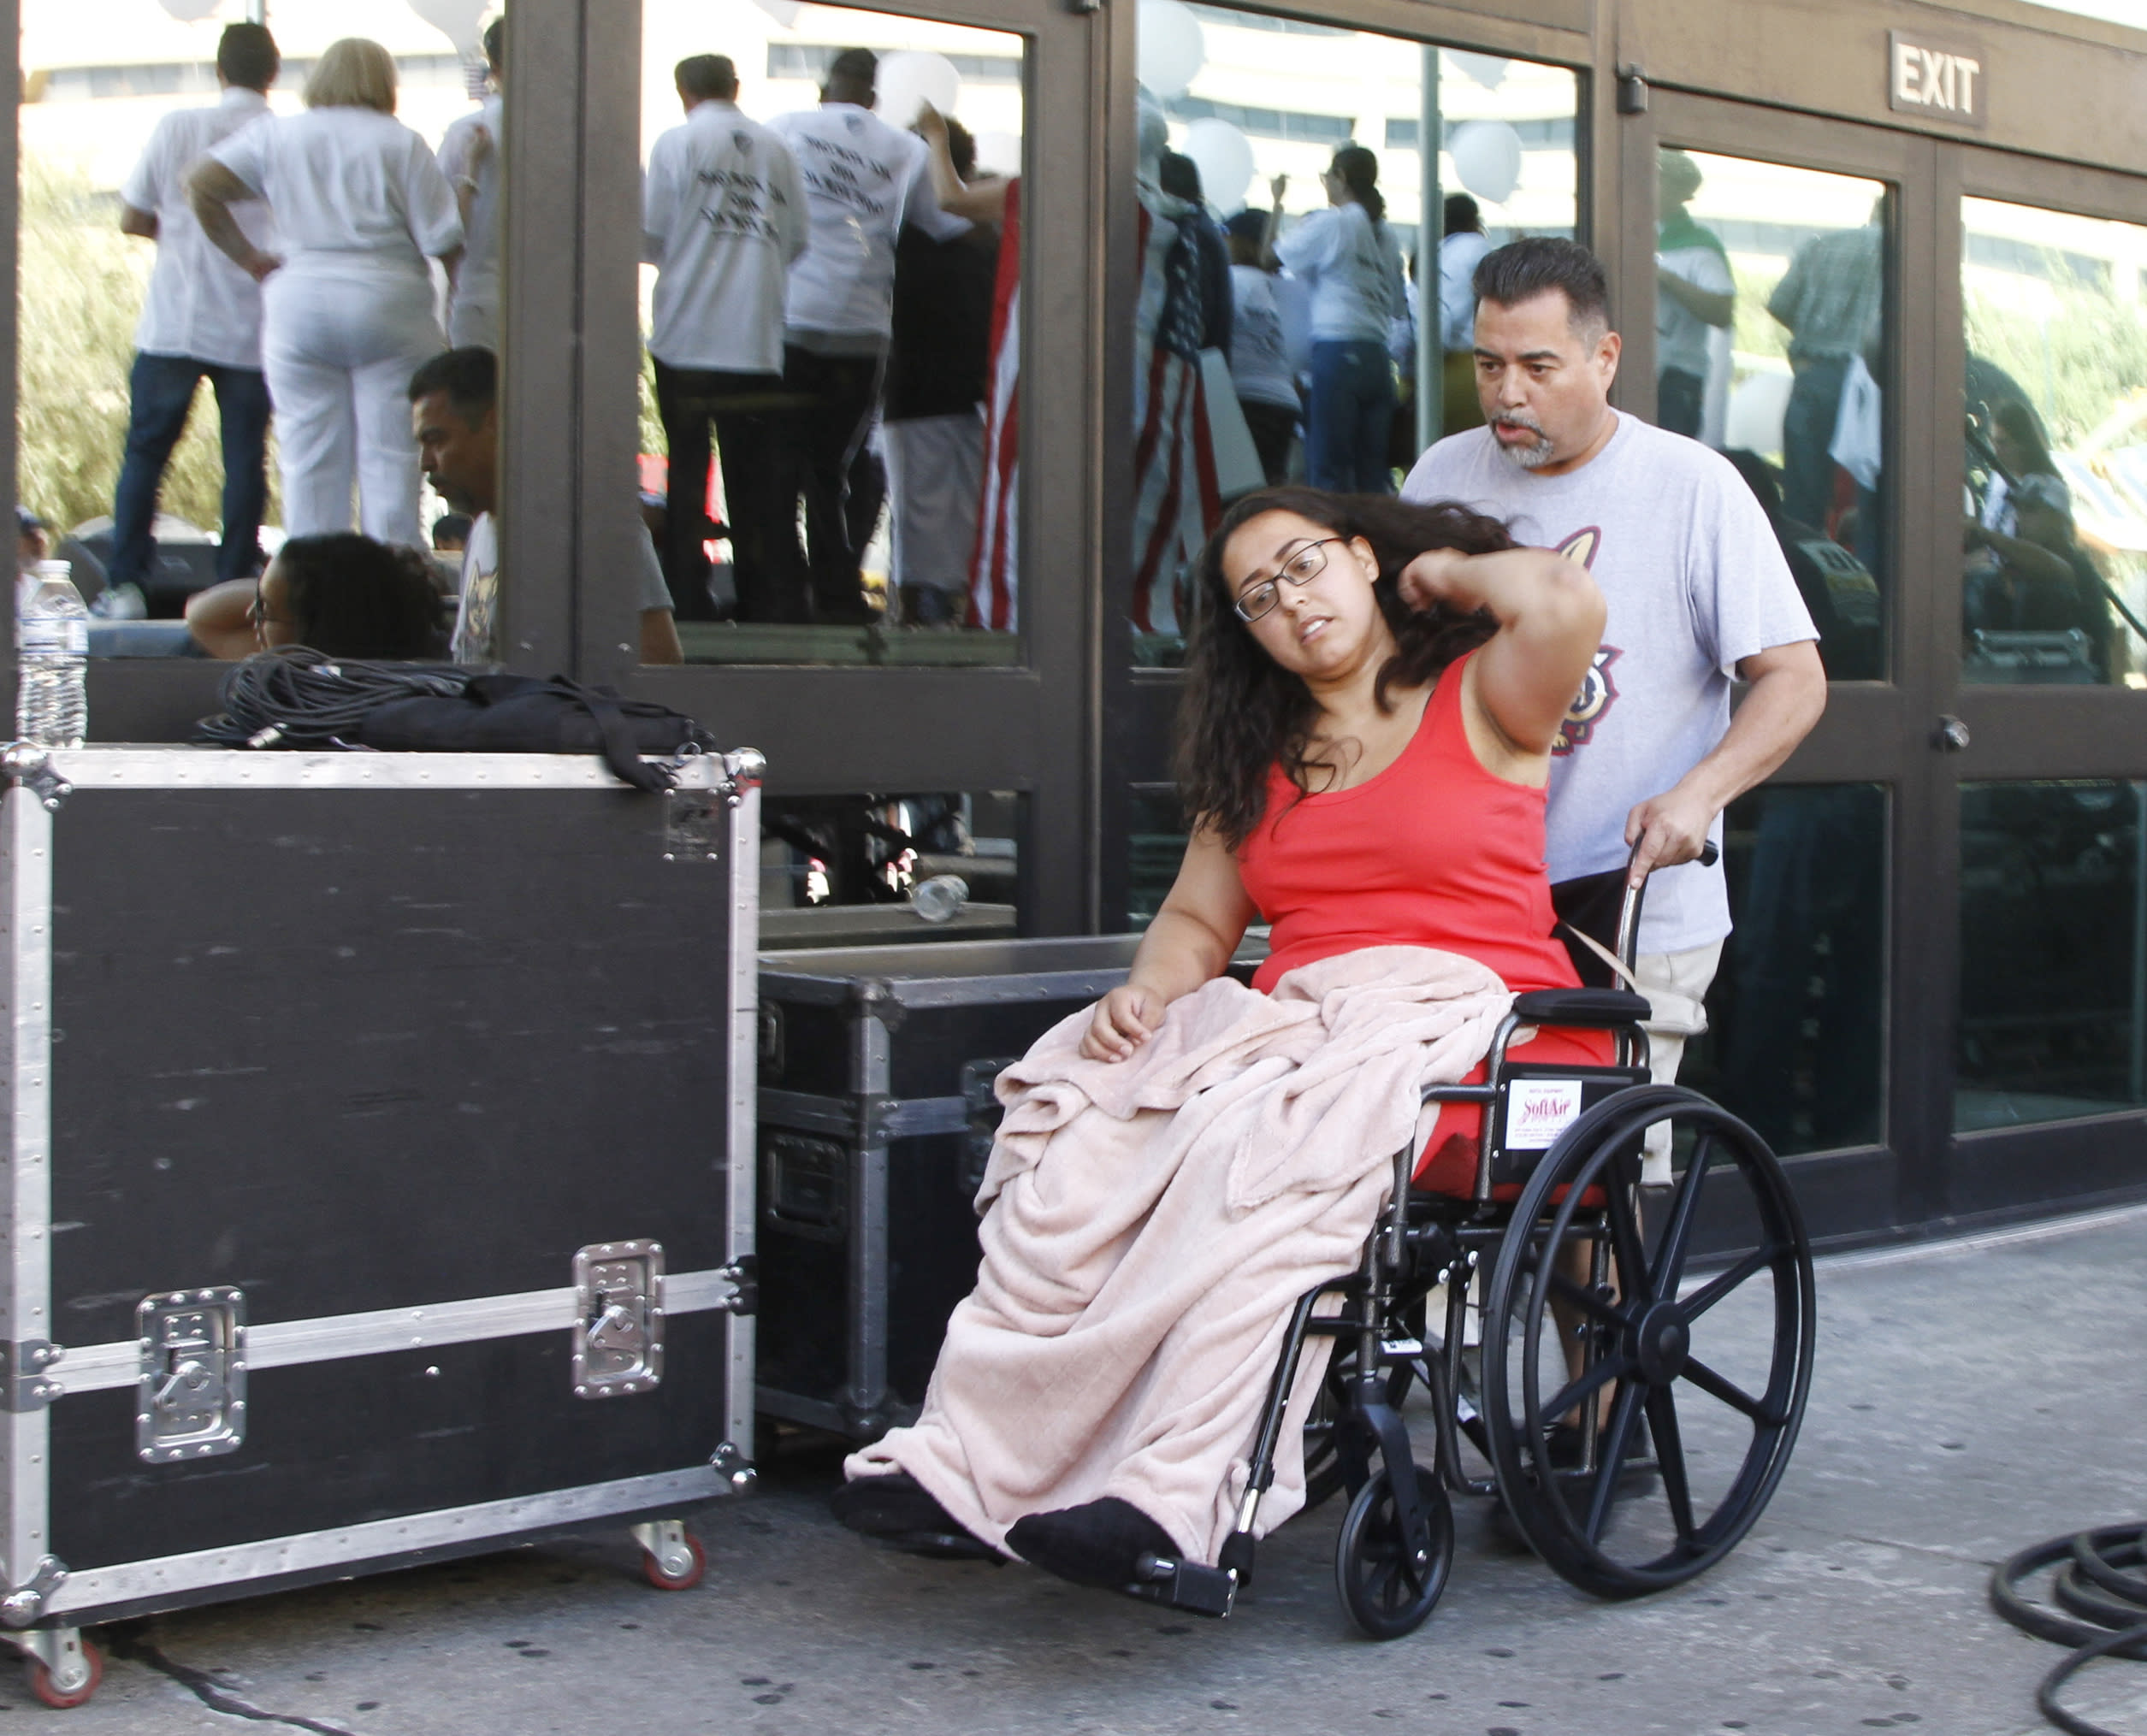 "CORRECTS TO AUG. 10, NOT 8 - Jessica Coca Garcia is wheeled away after speaking at League of United Latin American Citizens' ""March For a United America,"" in El Paso, Texas, on Saturday, Aug. 10, 2019, a week after she and her husband were injured by bullets during a mass shooting. More than 100 people marched through the Texas border denouncing racism and calling for stronger gun laws one week after several people were killed in a mass shooting that authorities say was carried out by a man targeting Mexicans. (AP Photo/Cedar Attanasio)"